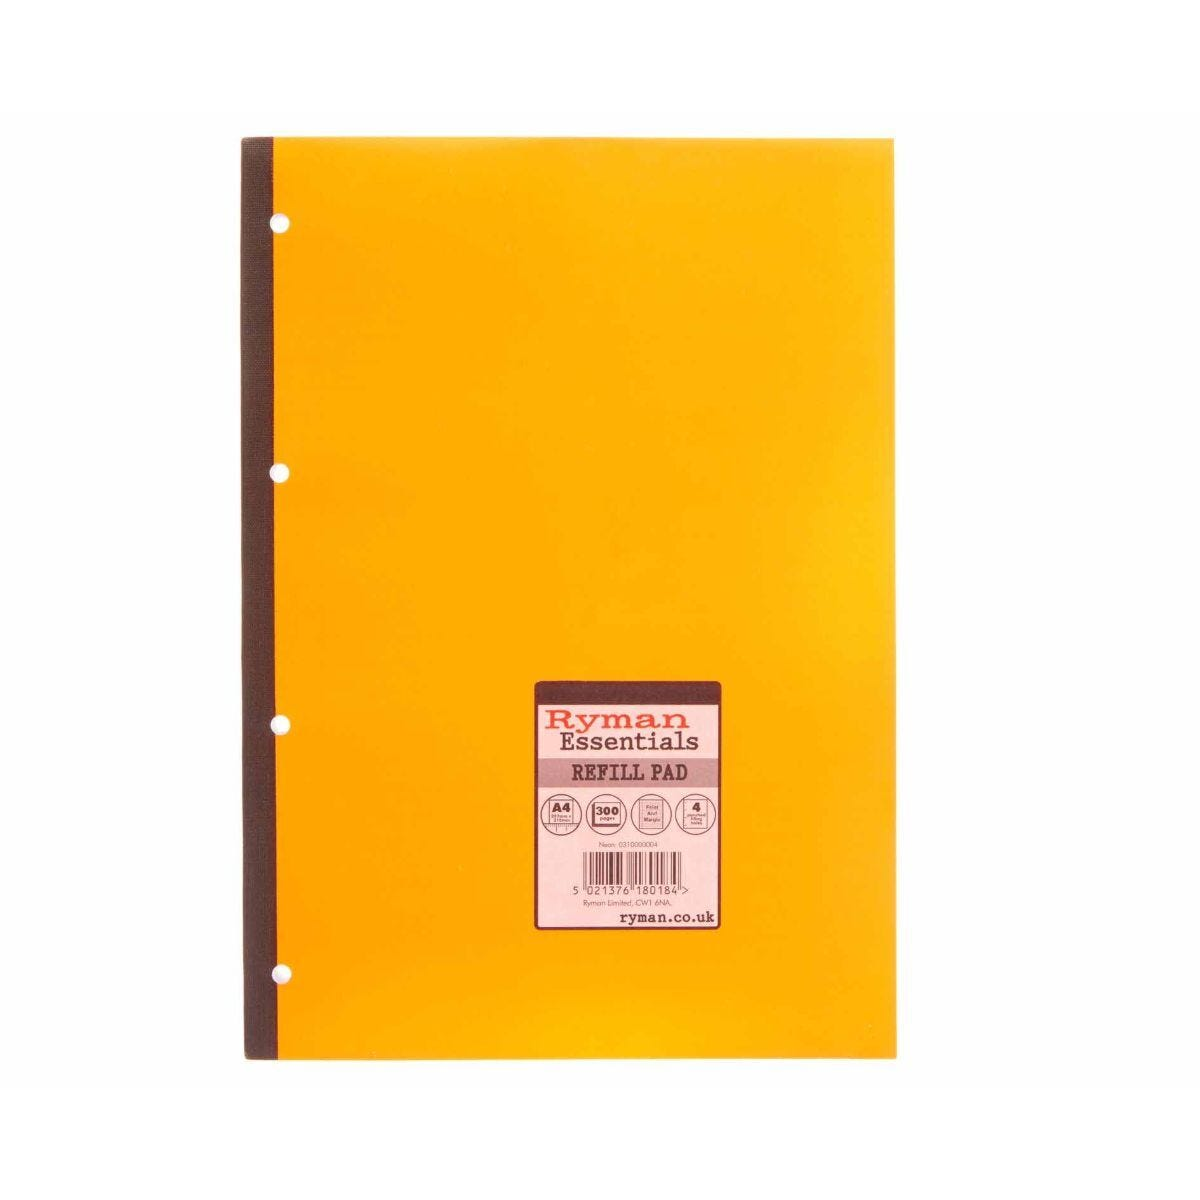 Ryman Essentials Promo Pad A4 300 Page Pack of 6